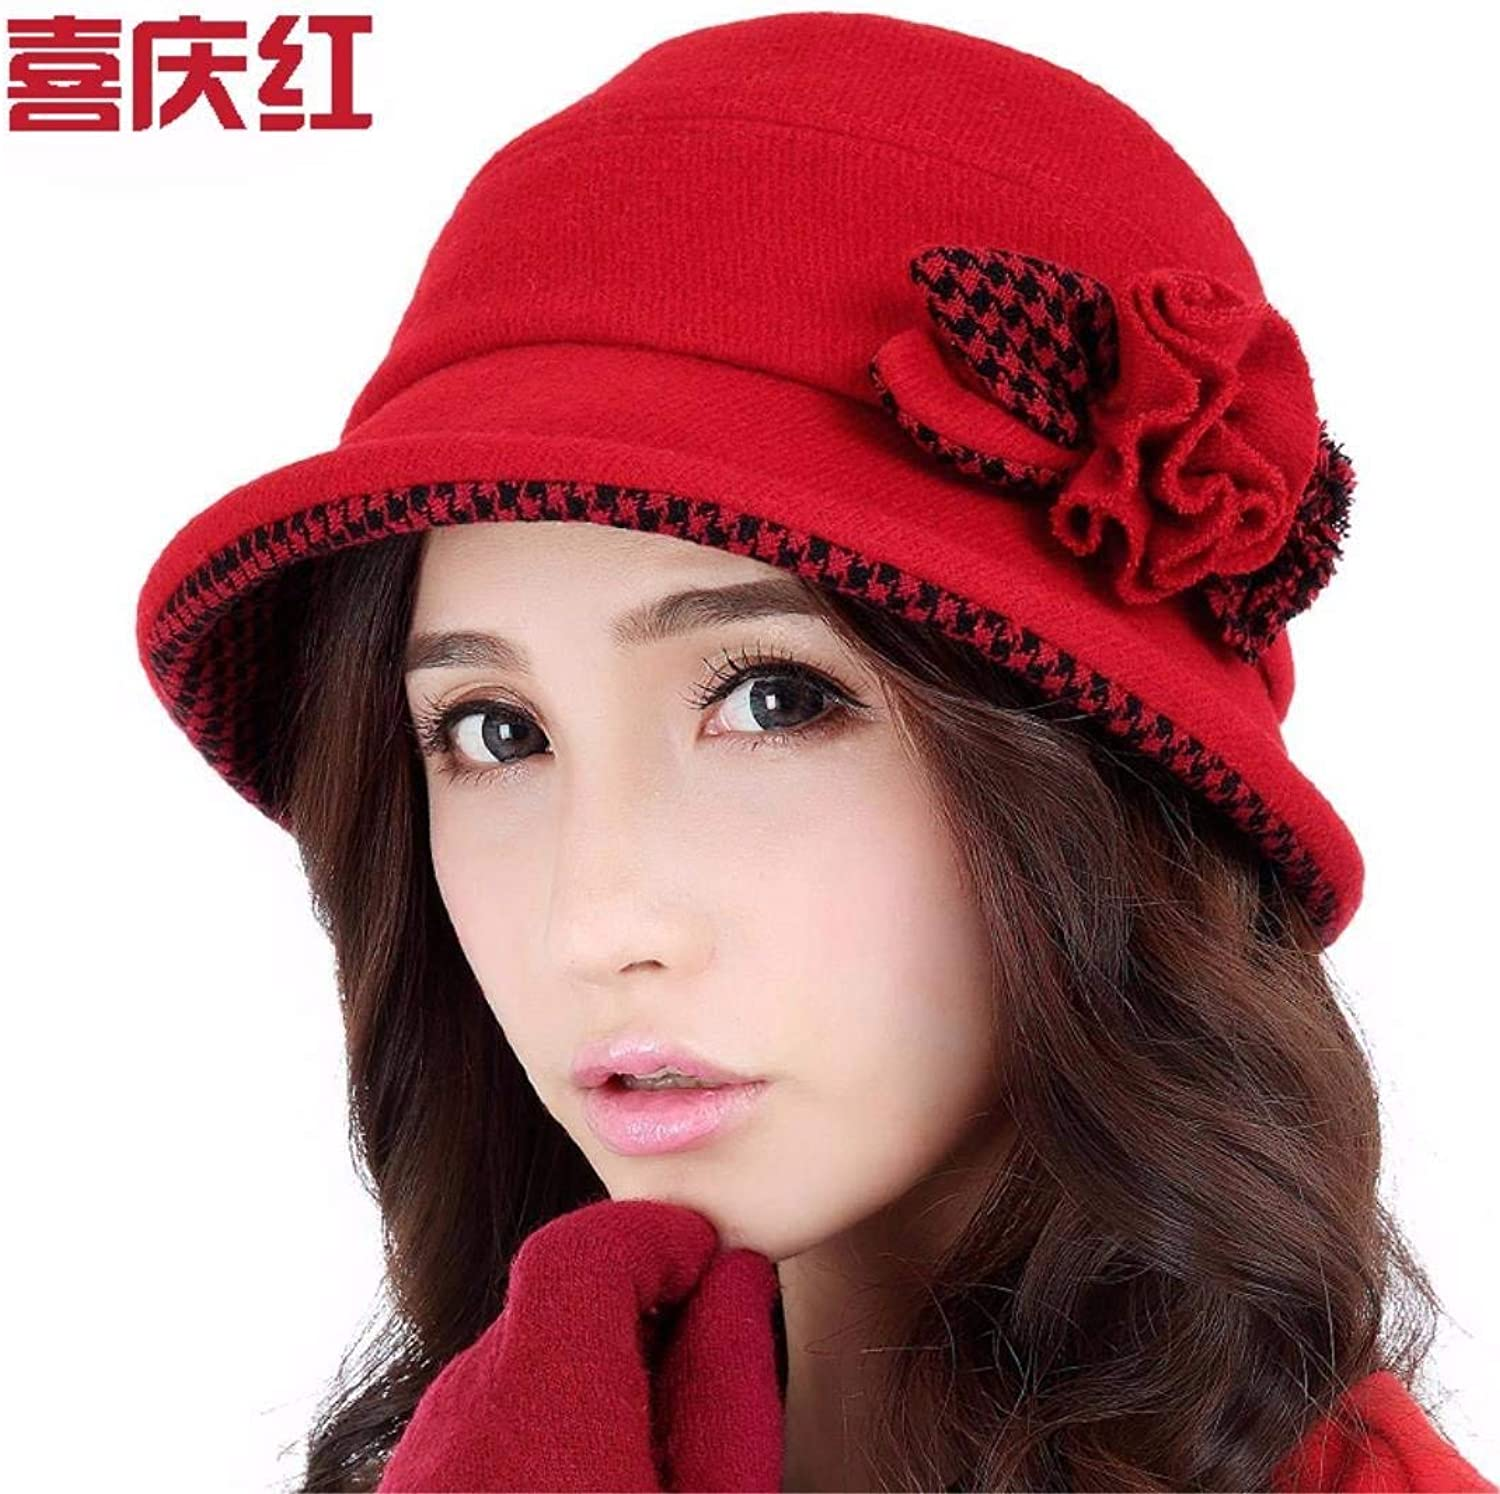 Dingkun The Small Roll edge hat female autumn and winter England basin cap, Elegant New